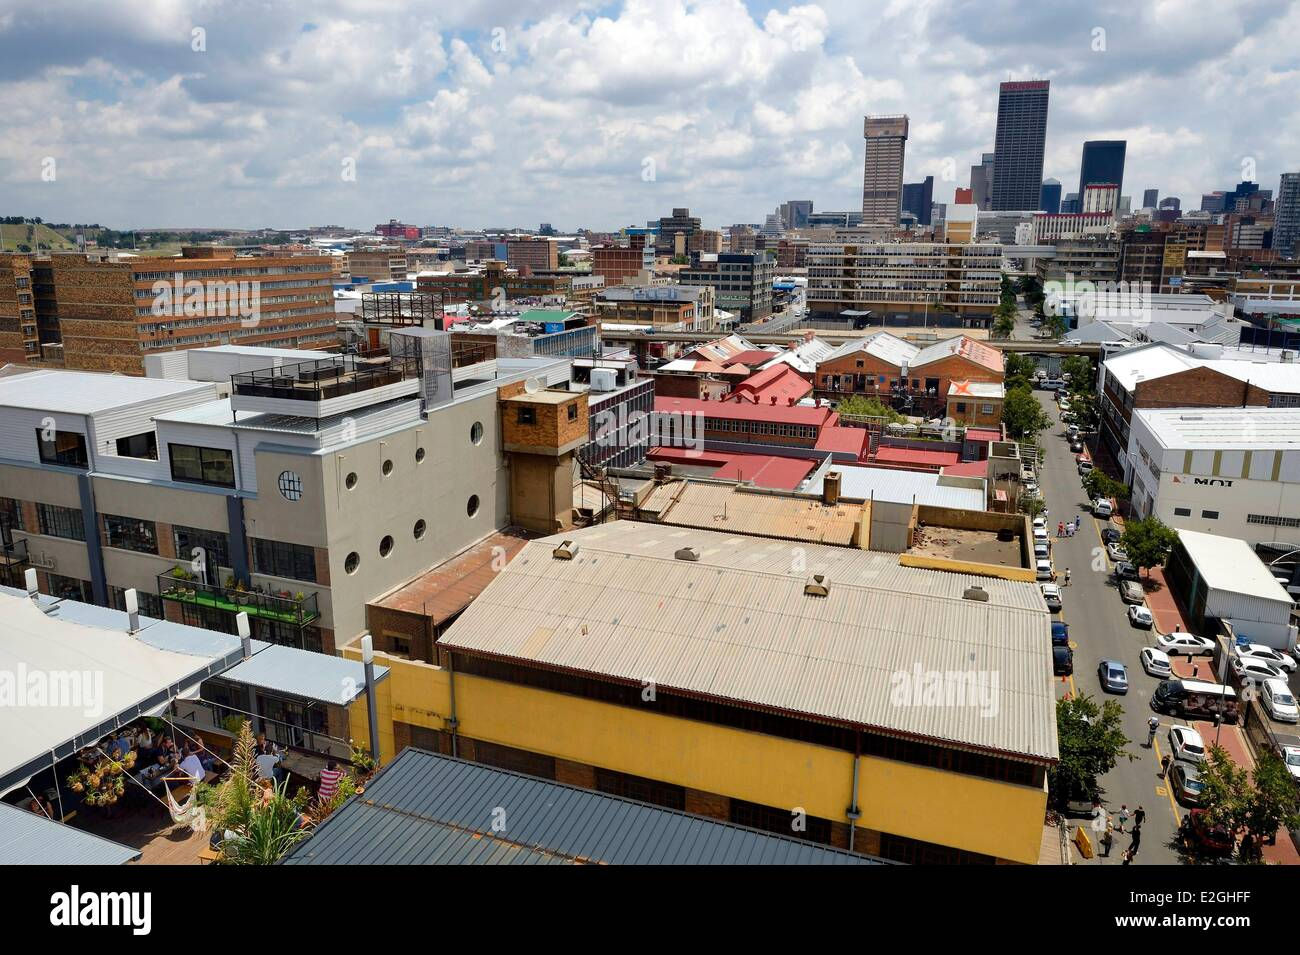 South Africa Gauteng Province Johannesburg CBD Central Business District Maboneng Around Fox Street Living Room Restaurant And Bar In Foreground